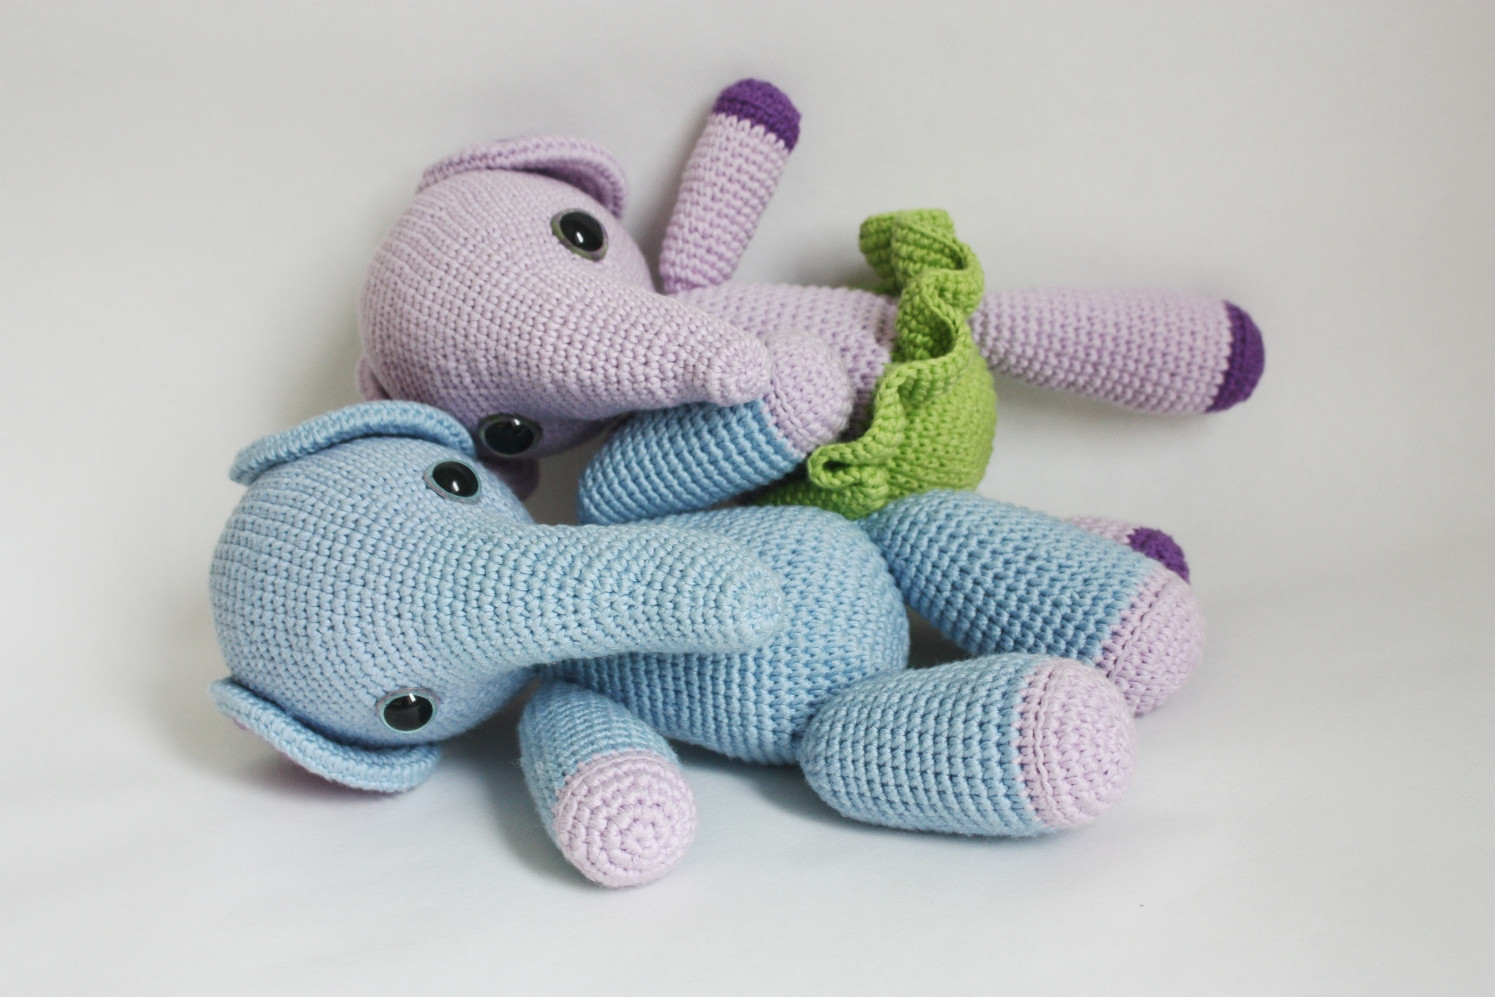 Crochet Elephant Awesome Happyamigurumi New Pattern 2 In 1 Mio the Elephant and Of Amazing 49 Models Crochet Elephant